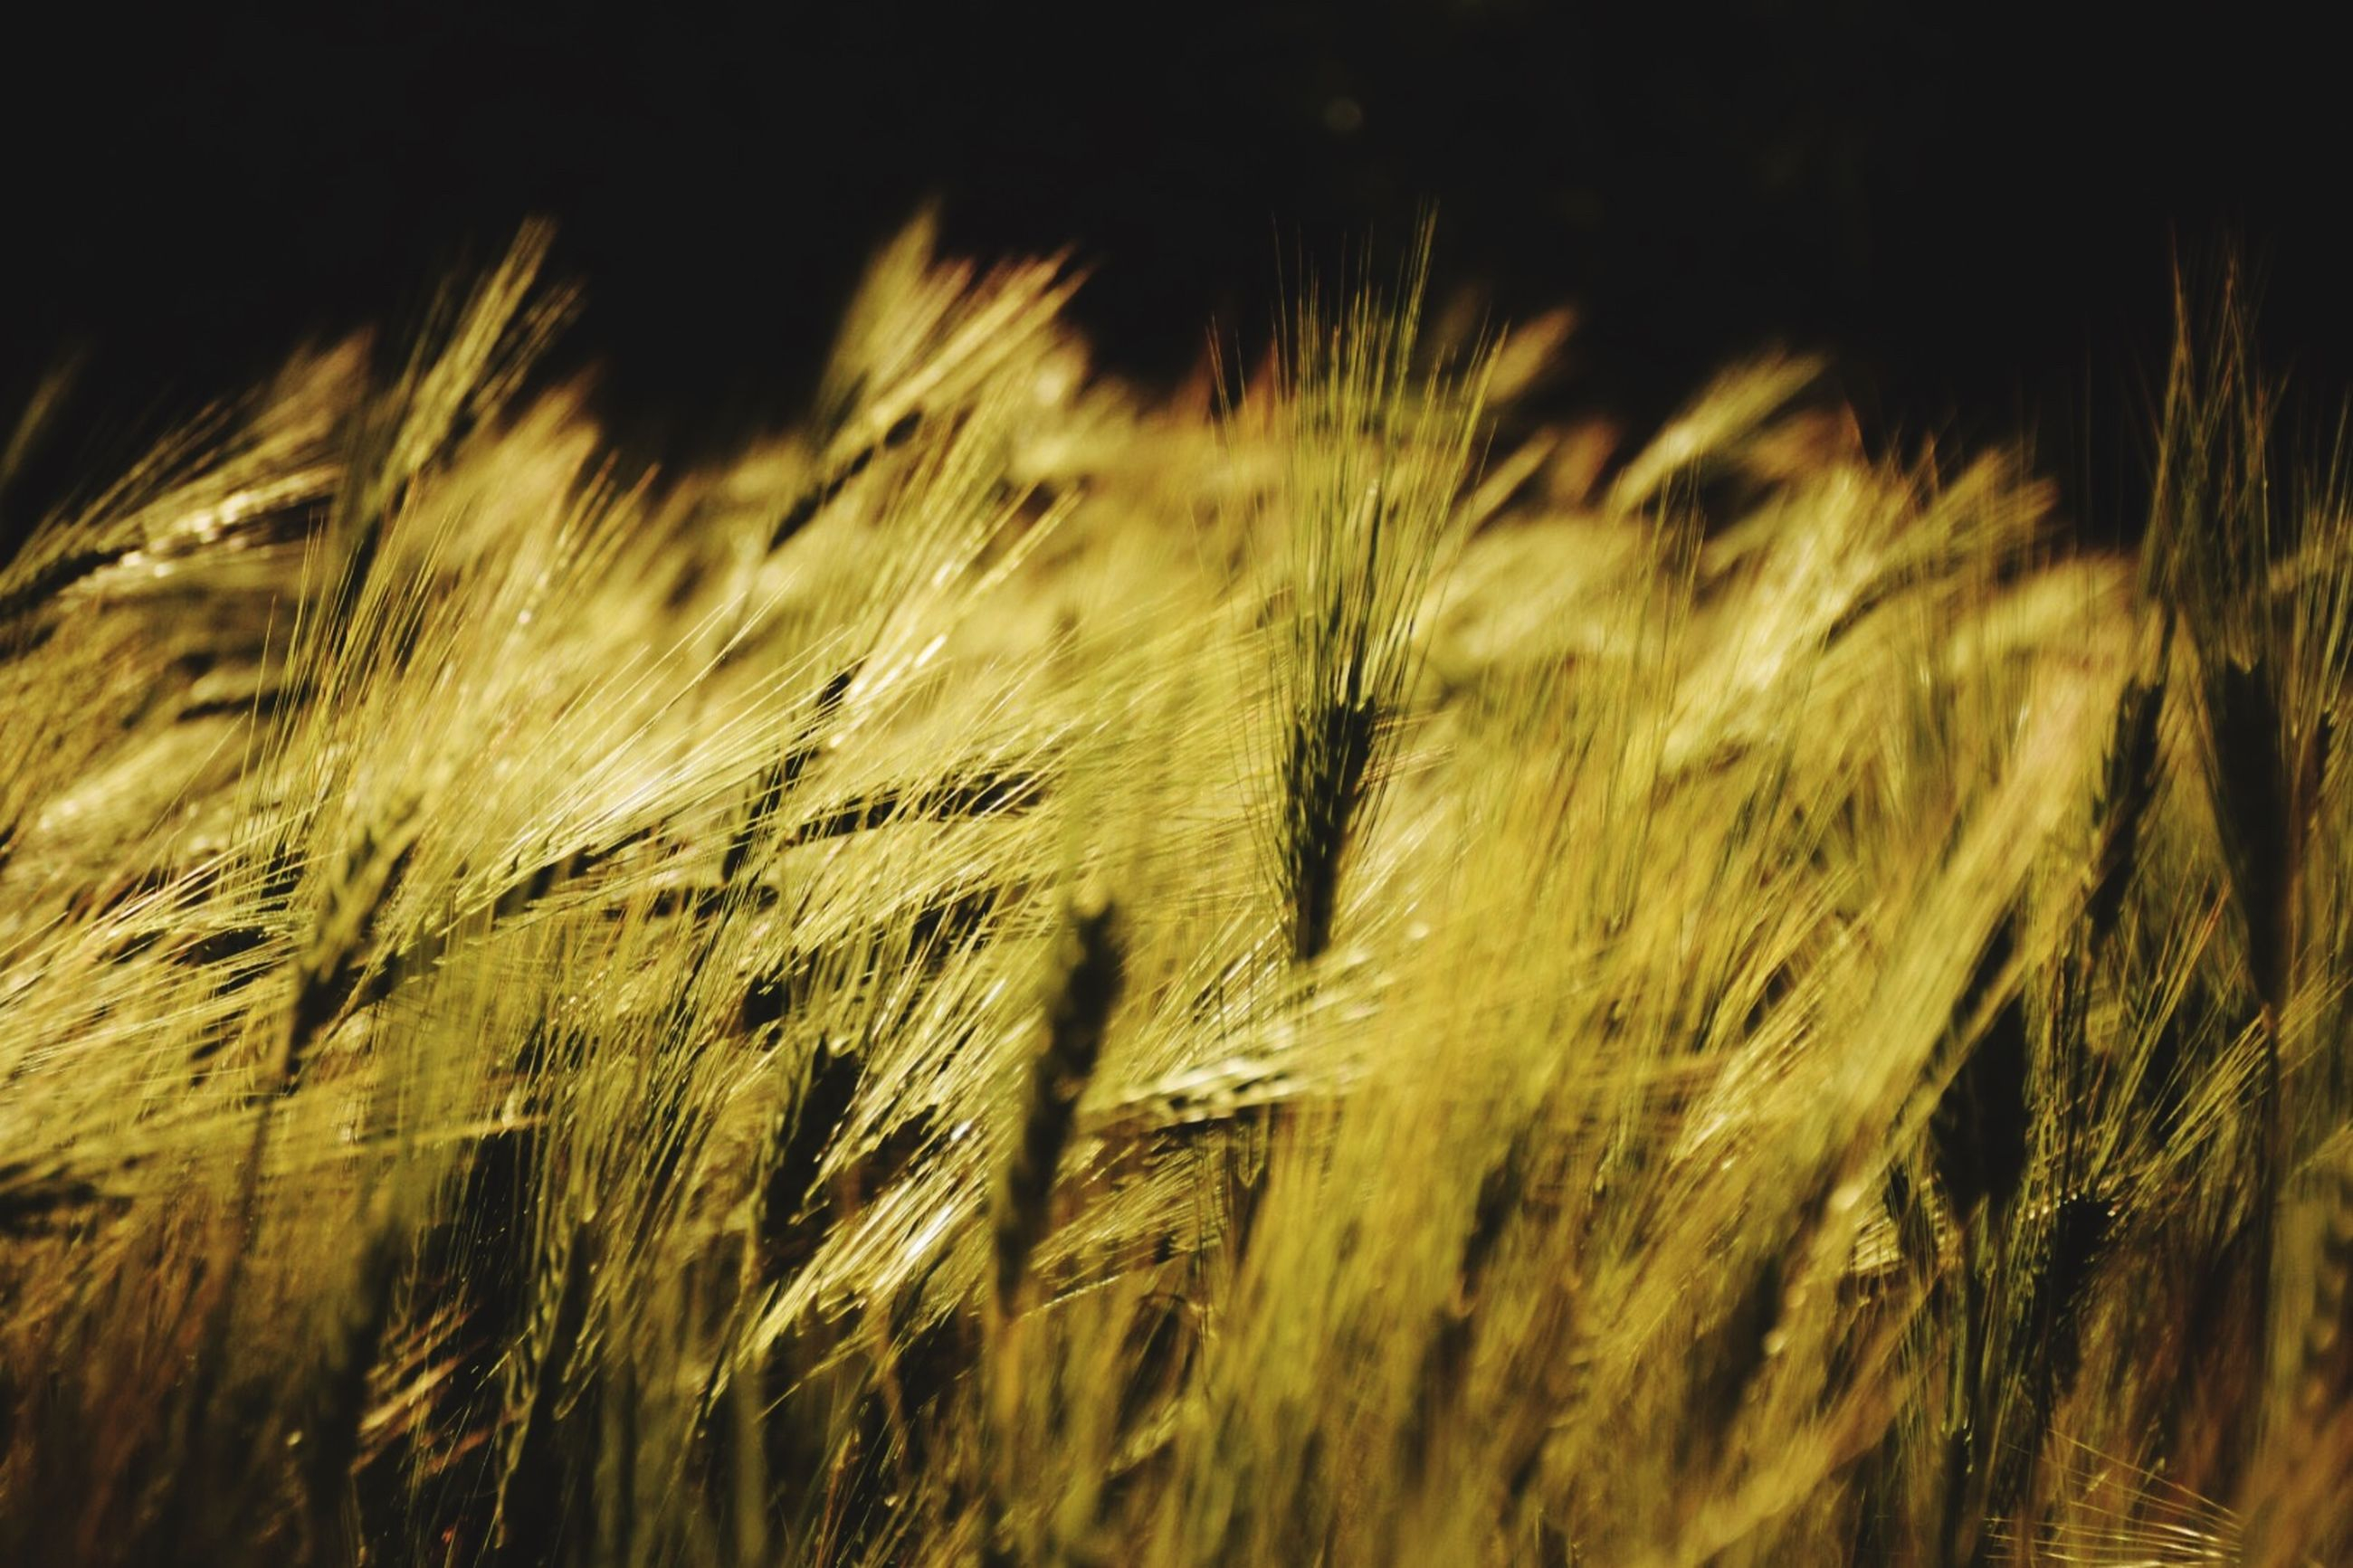 plant, growth, agriculture, field, crop, land, cereal plant, nature, selective focus, no people, close-up, rural scene, beauty in nature, day, landscape, tranquility, farm, wheat, grass, outdoors, wind, stalk, timothy grass